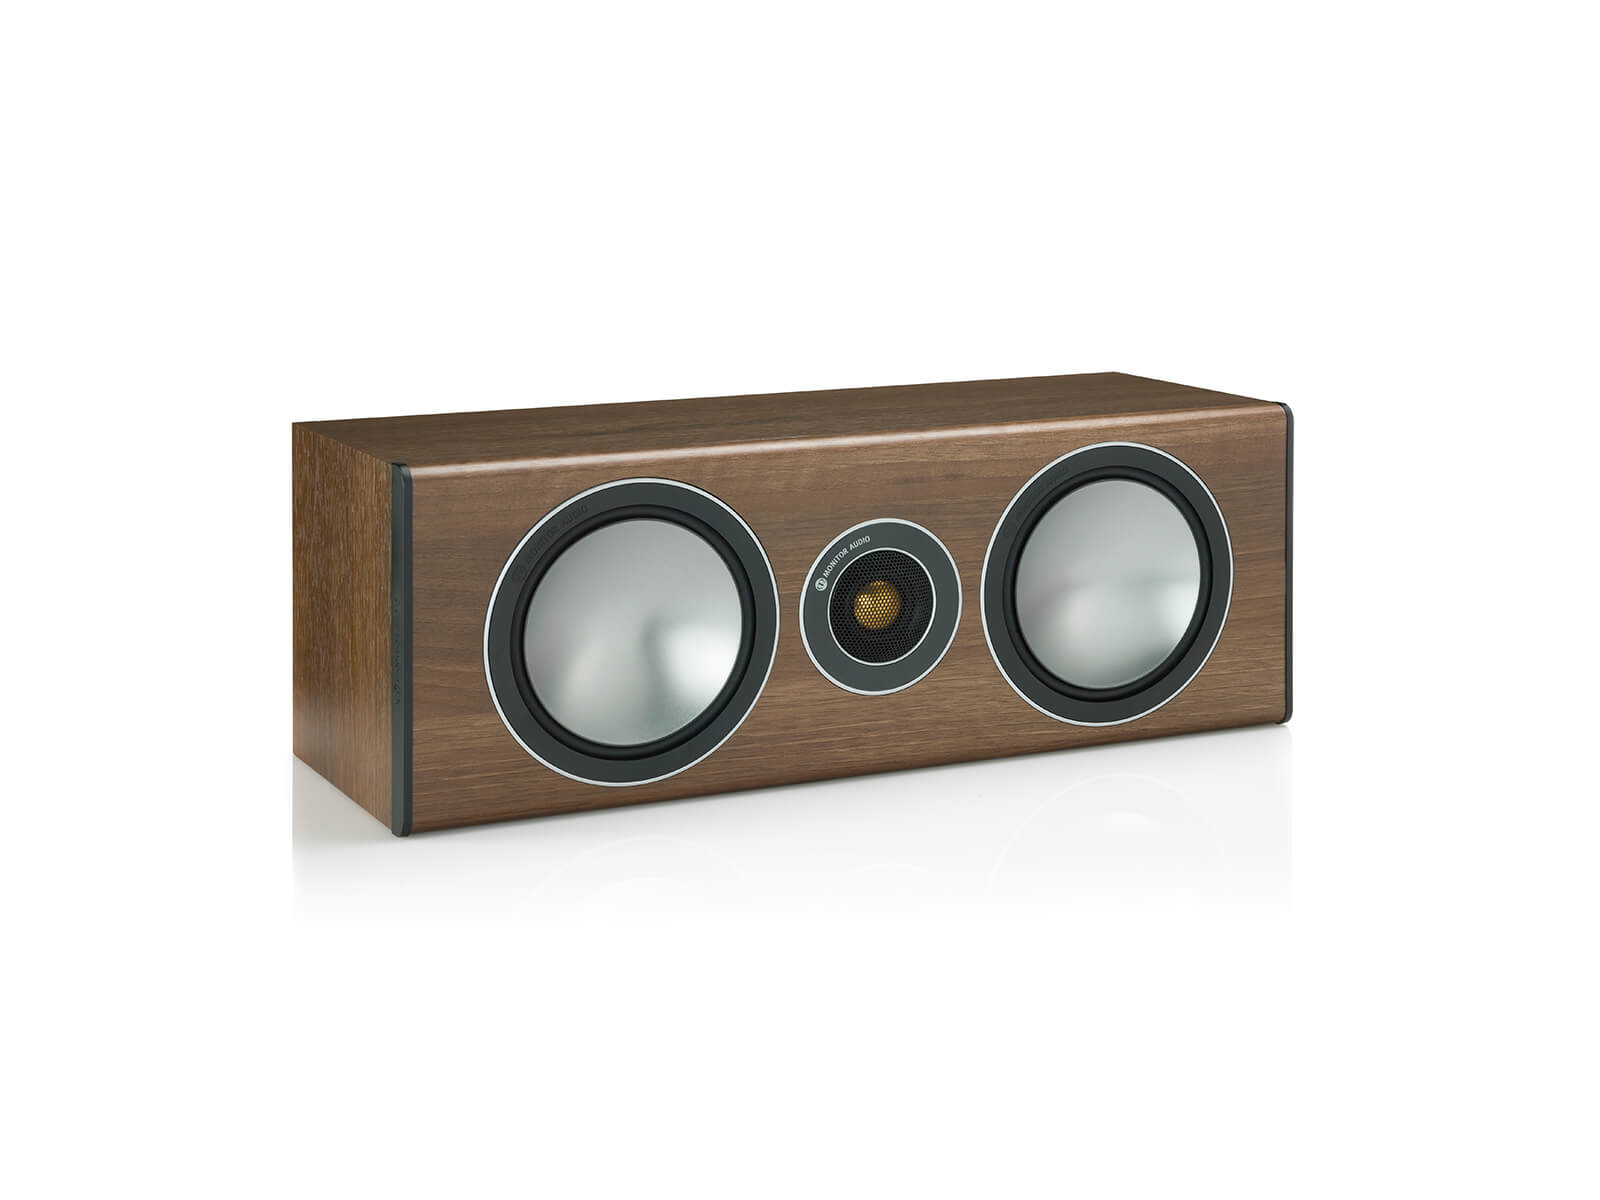 Bronze Centre, grille-less centre channel speakers, with a walnut vinyl finish.